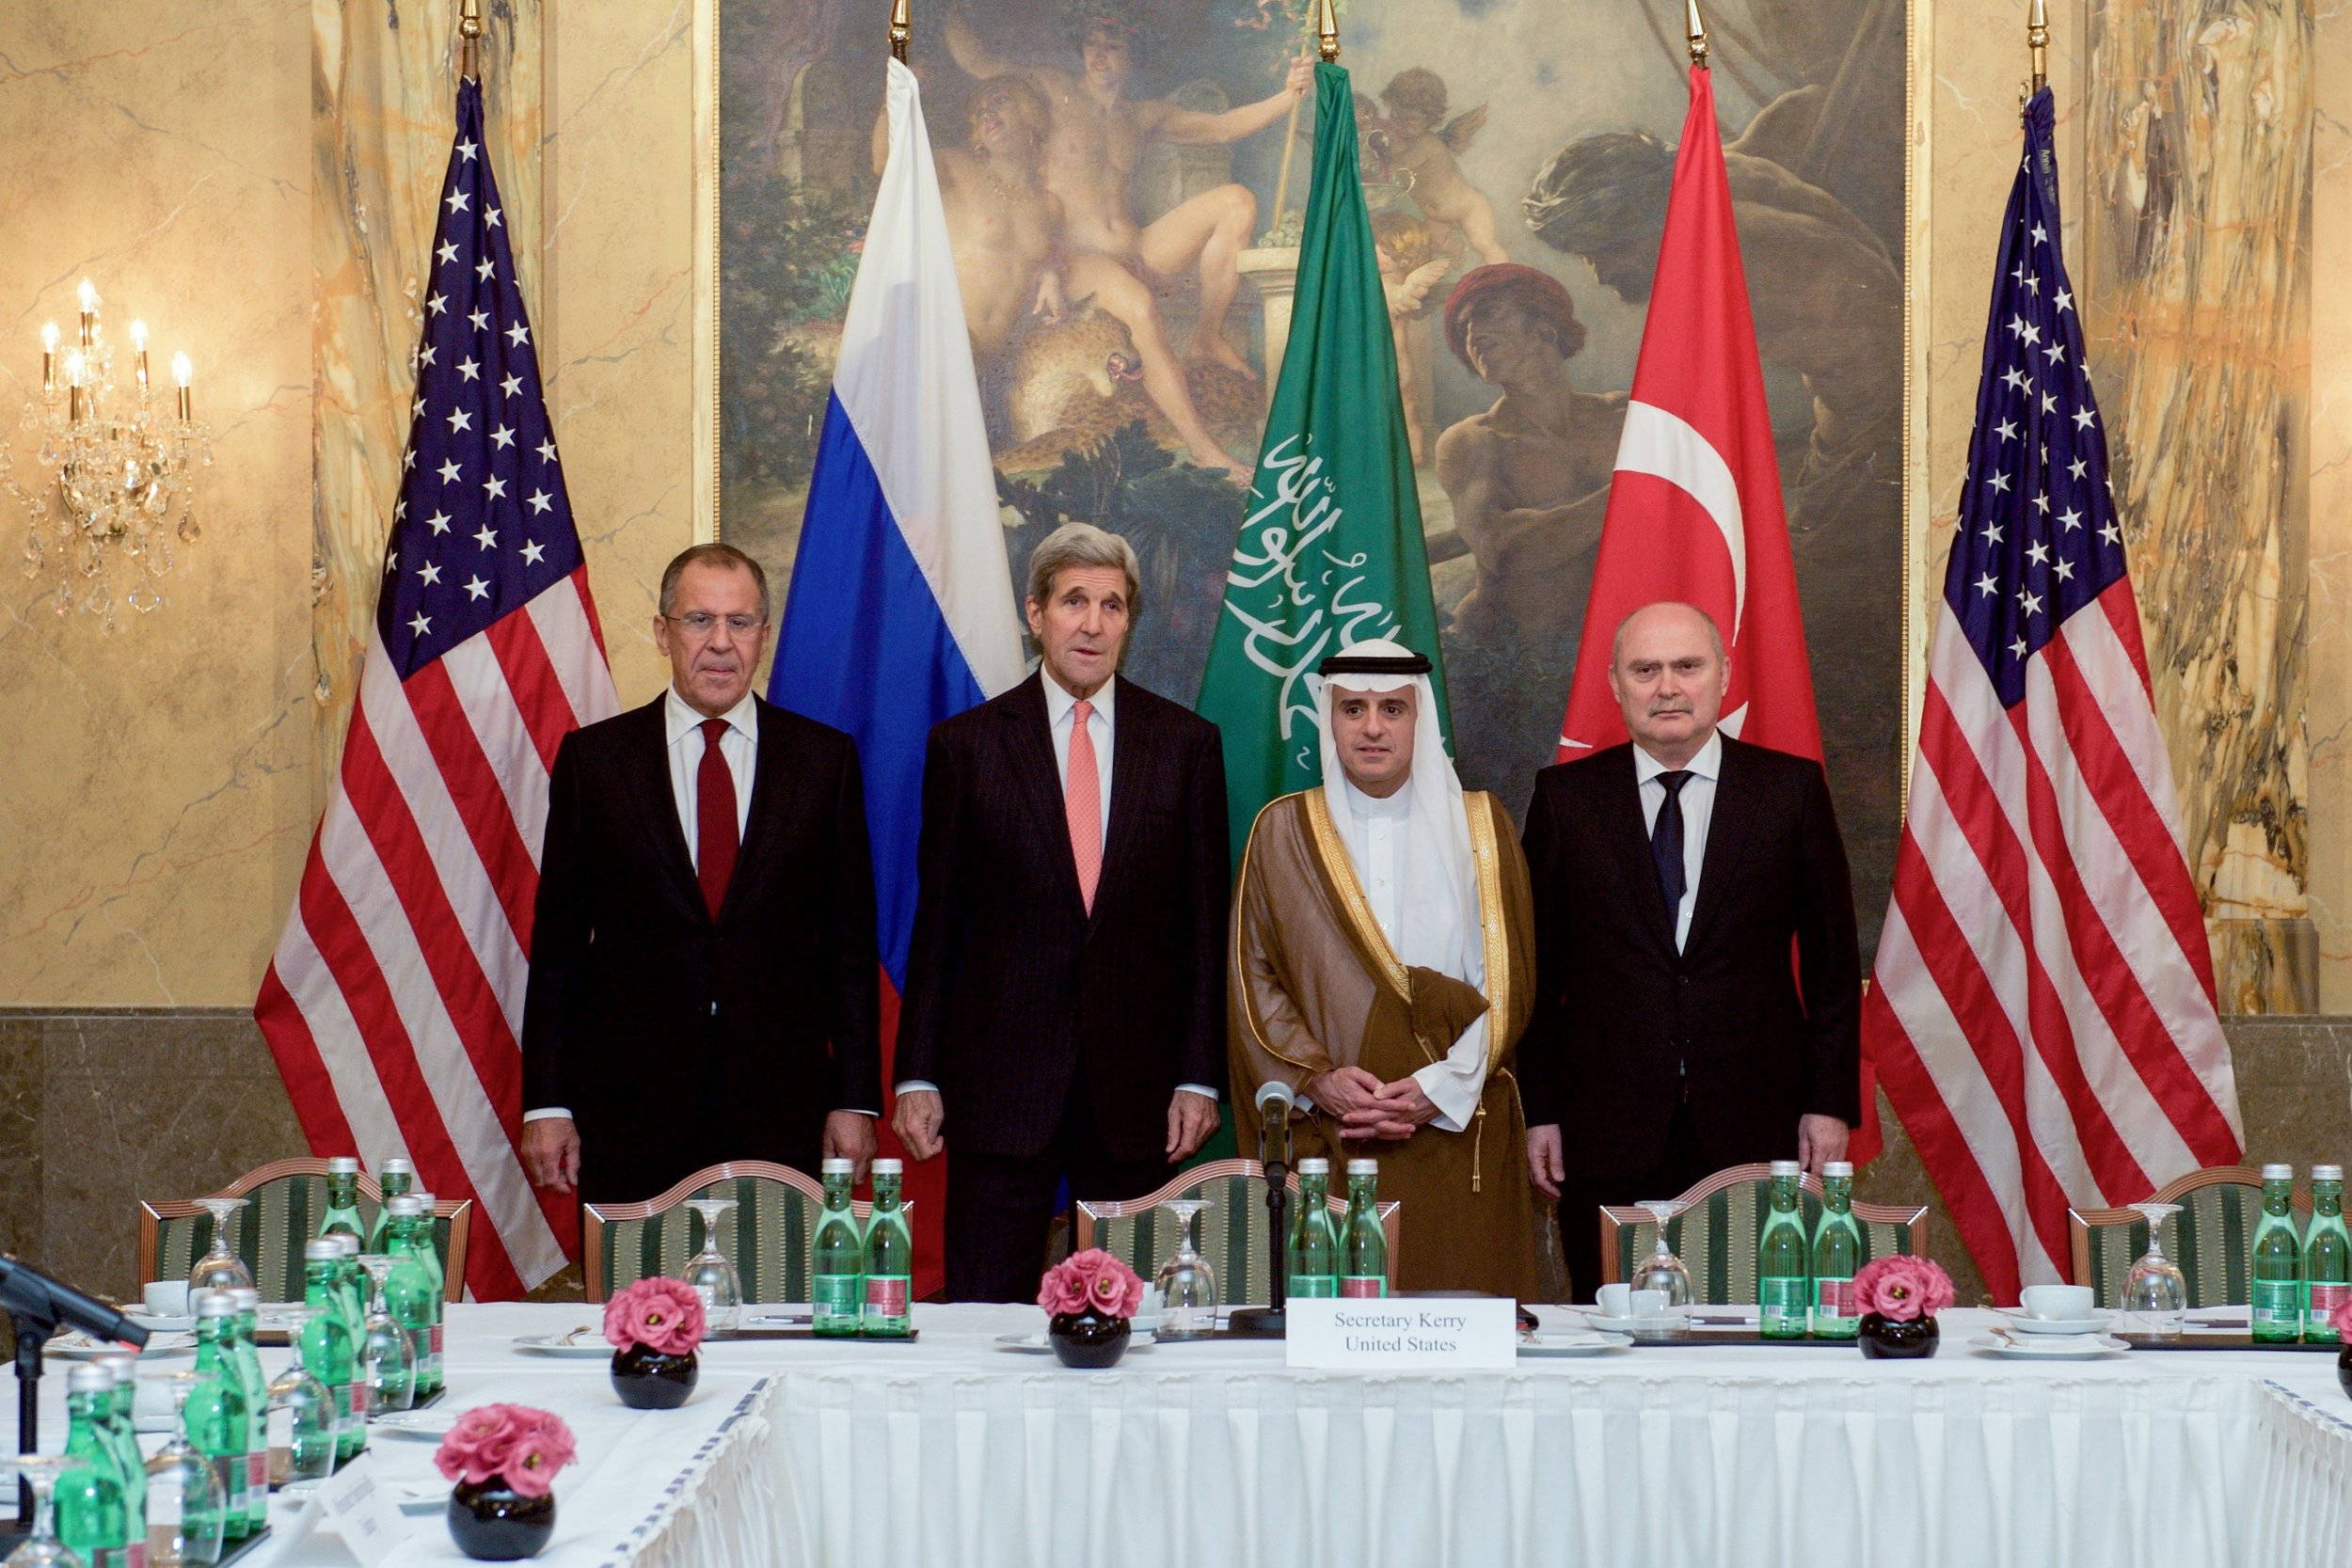 Secretary Kerry meets with Turkish Foreign Minister Sinirlioglu, Saudi Foreign Minister al-Jubeir, and Russian Foreign Minister Lavrov before their meeting on Syria